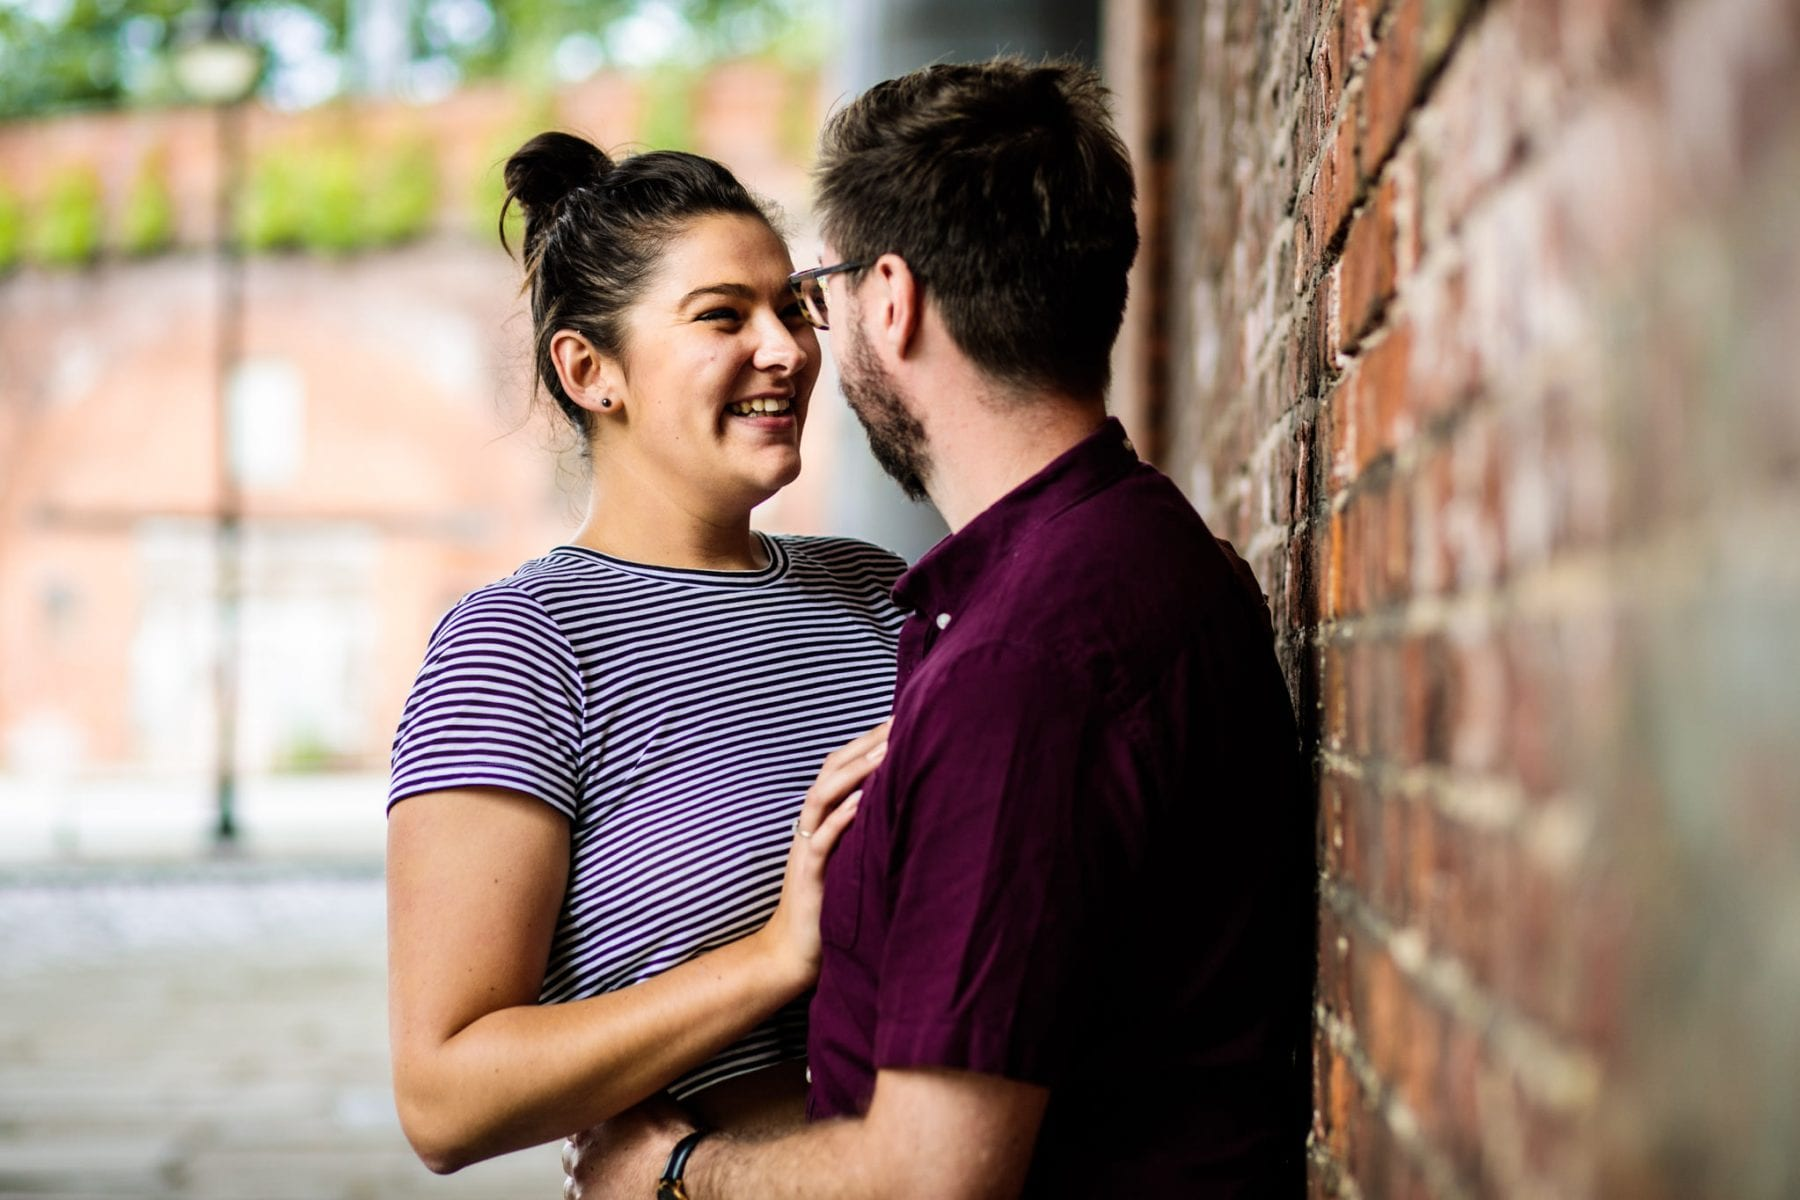 Manchester Prewedding Shoot